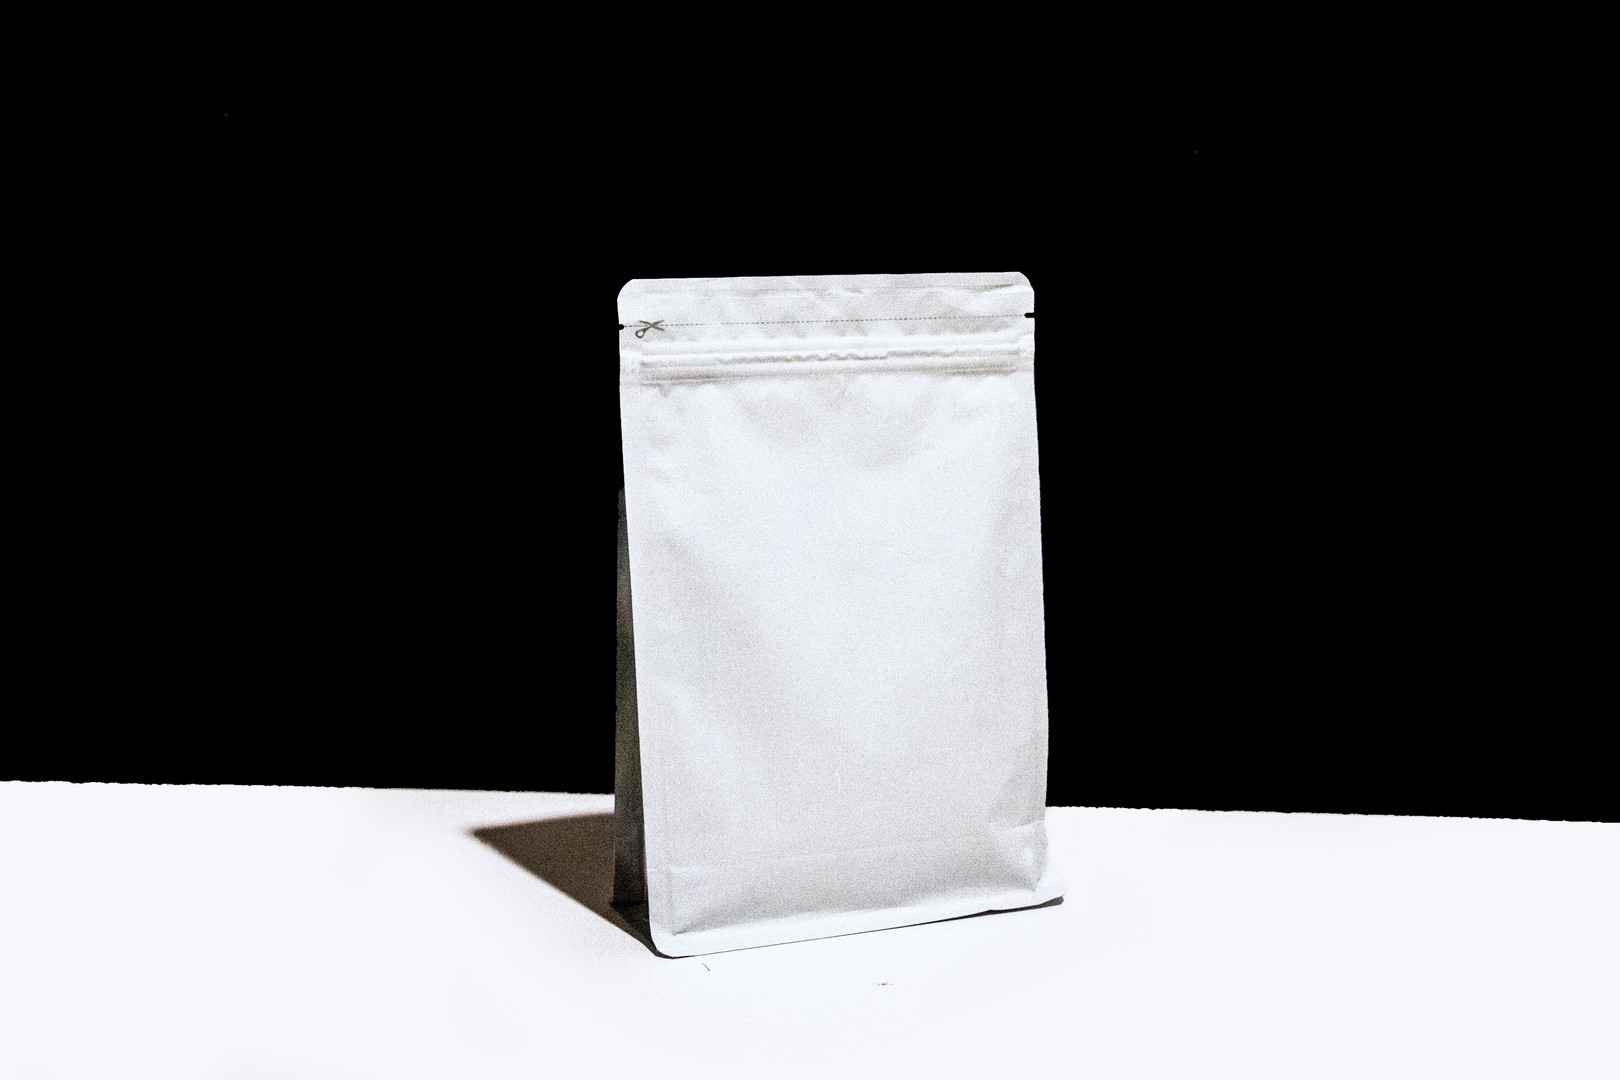 Bottom Gusset Pouch for Coffee Bean_Synopack.jpg